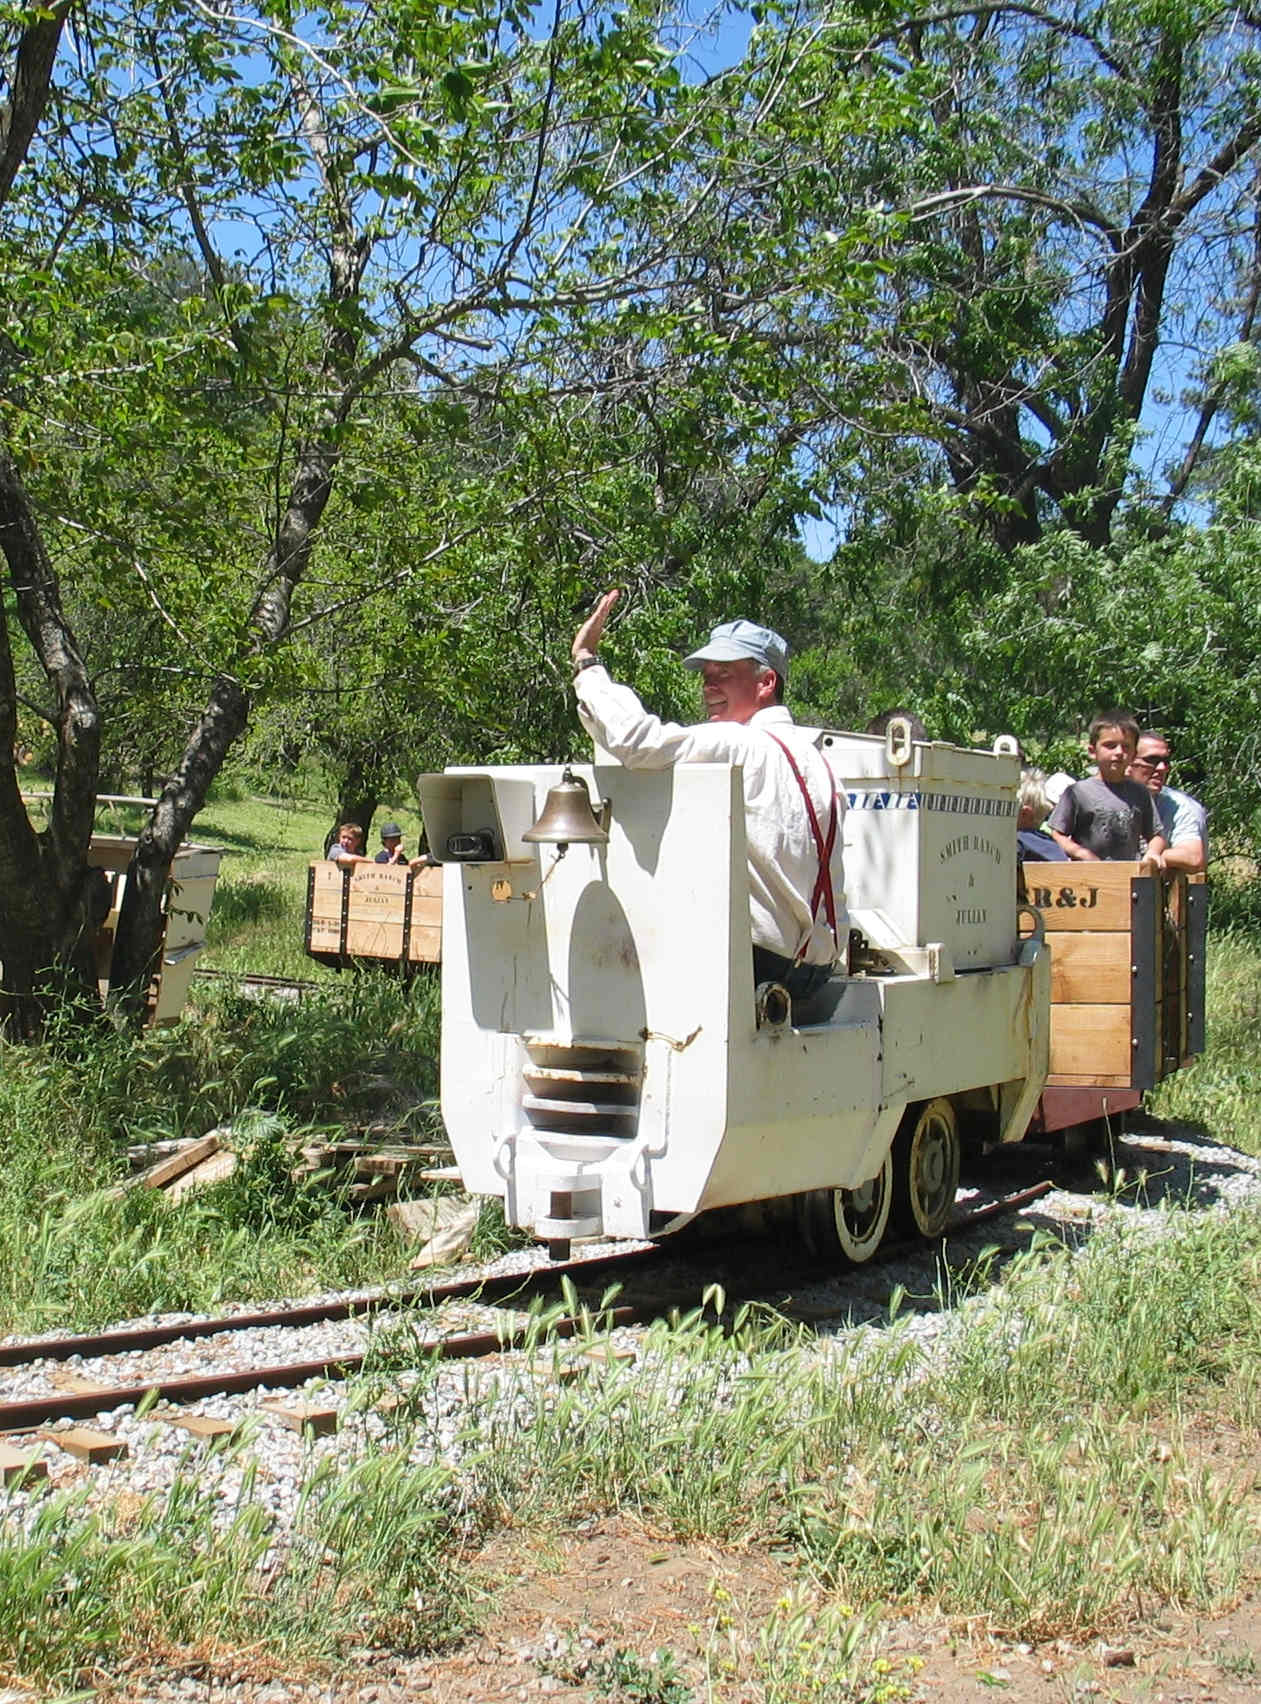 Author Gregory O. Smith driving a battery-powered Gold Mining Locomotive, pulling passengers in train cars, during his popular and successful living history adventure tour program.